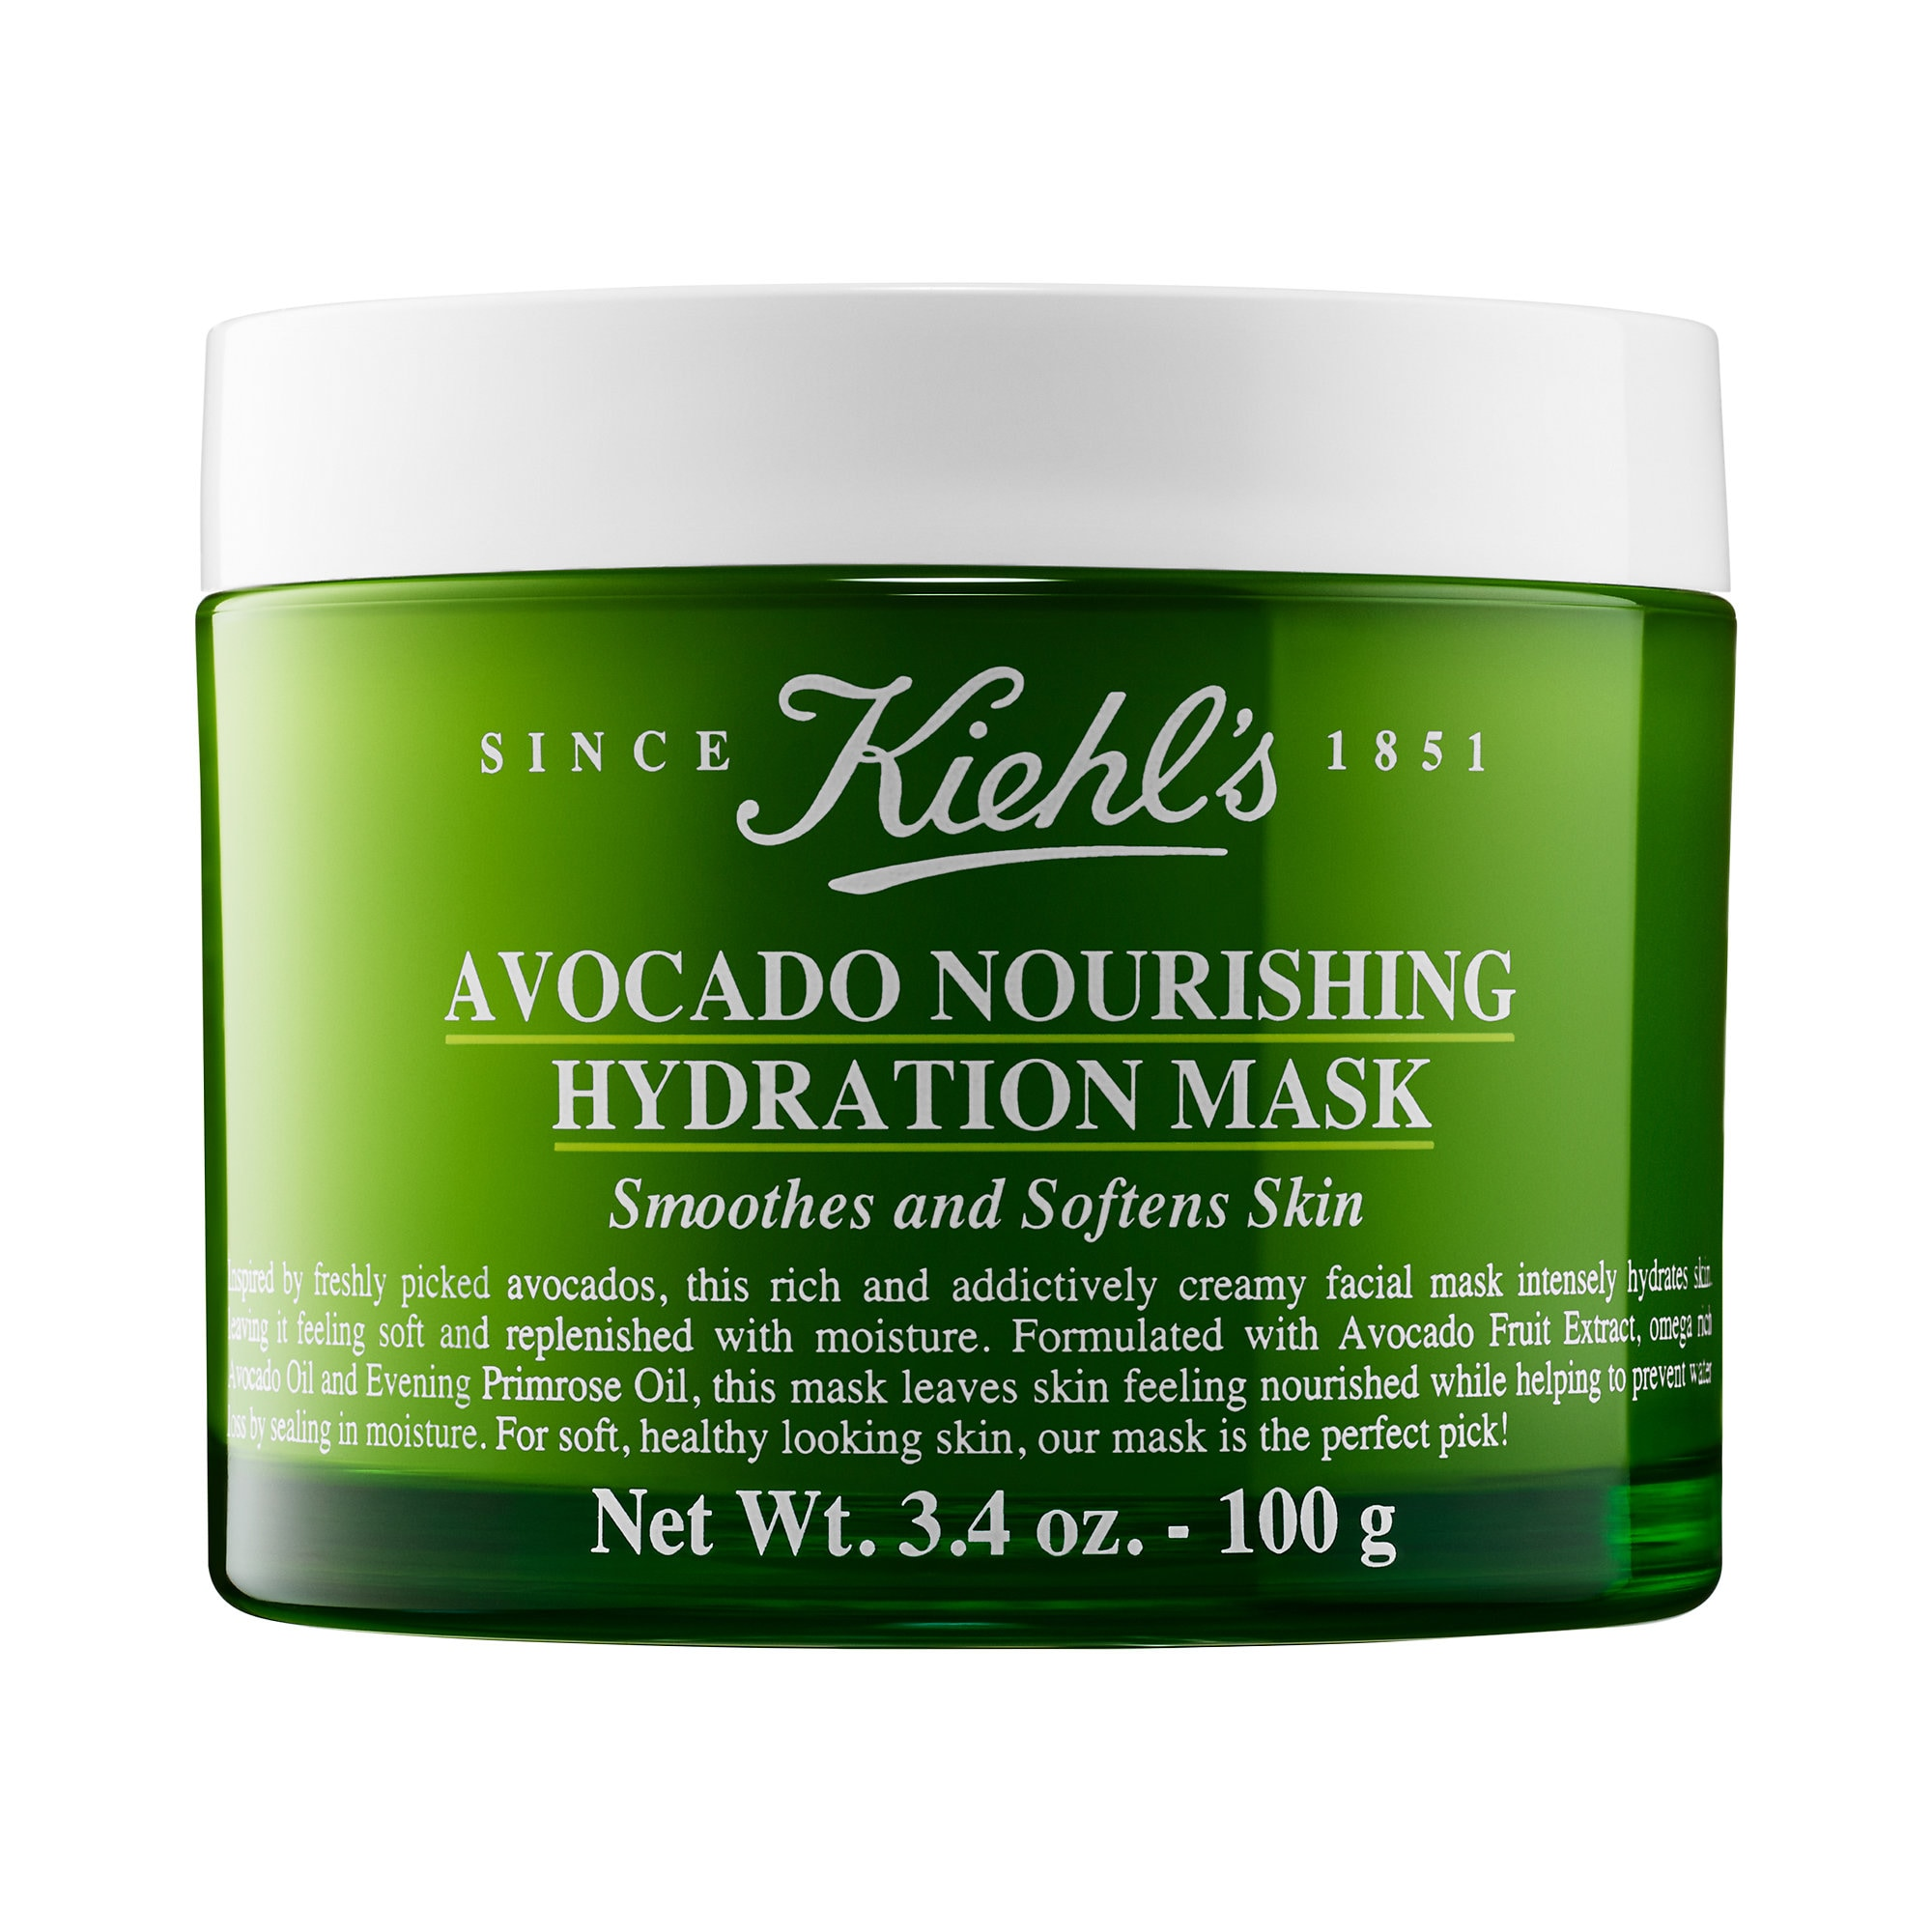 Kiehl's - Avocado Nourishing Hydration Mask